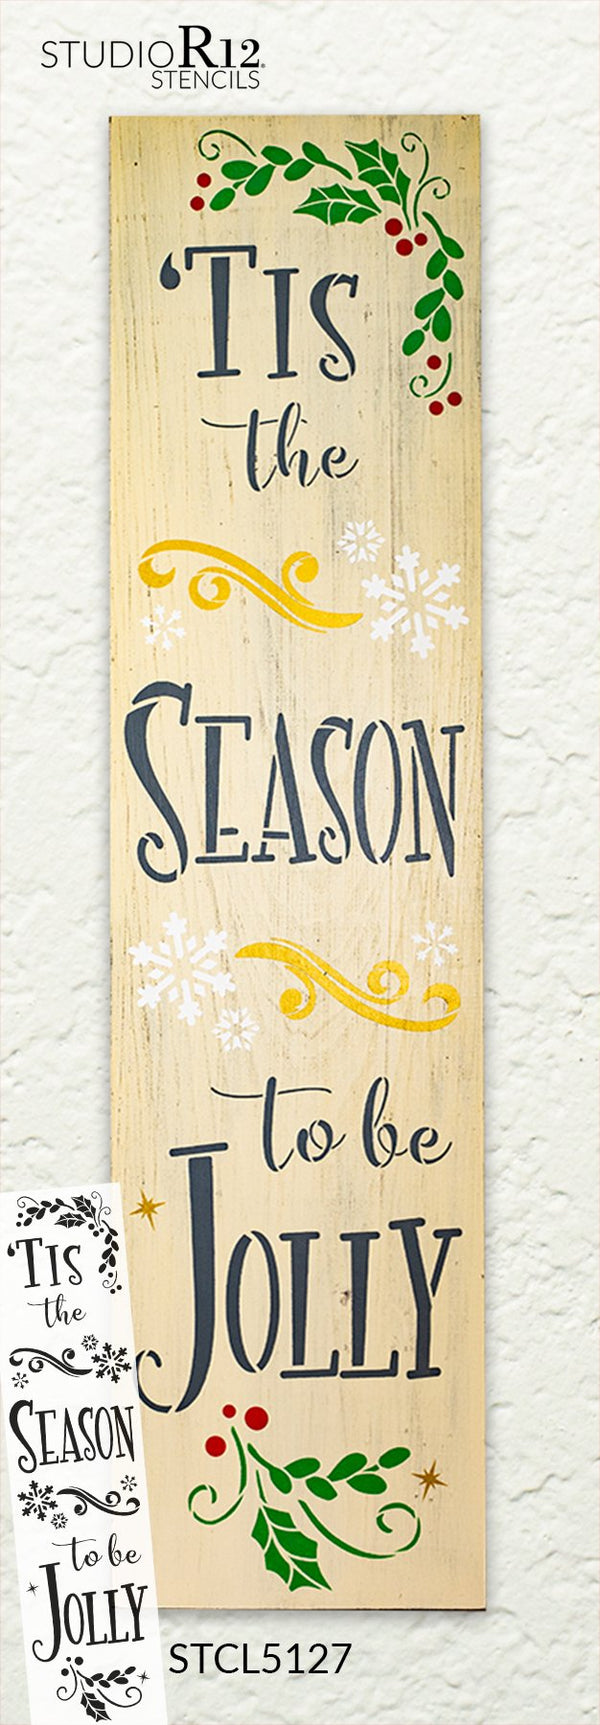 Tis The Season - Be Jolly 2-Part Stencil by StudioR12 | DIY Christmas Home Decor Gift | Craft & Paint Wood Sign | Reusable Mylar Template | 1 x 4 FEET | STCL5127